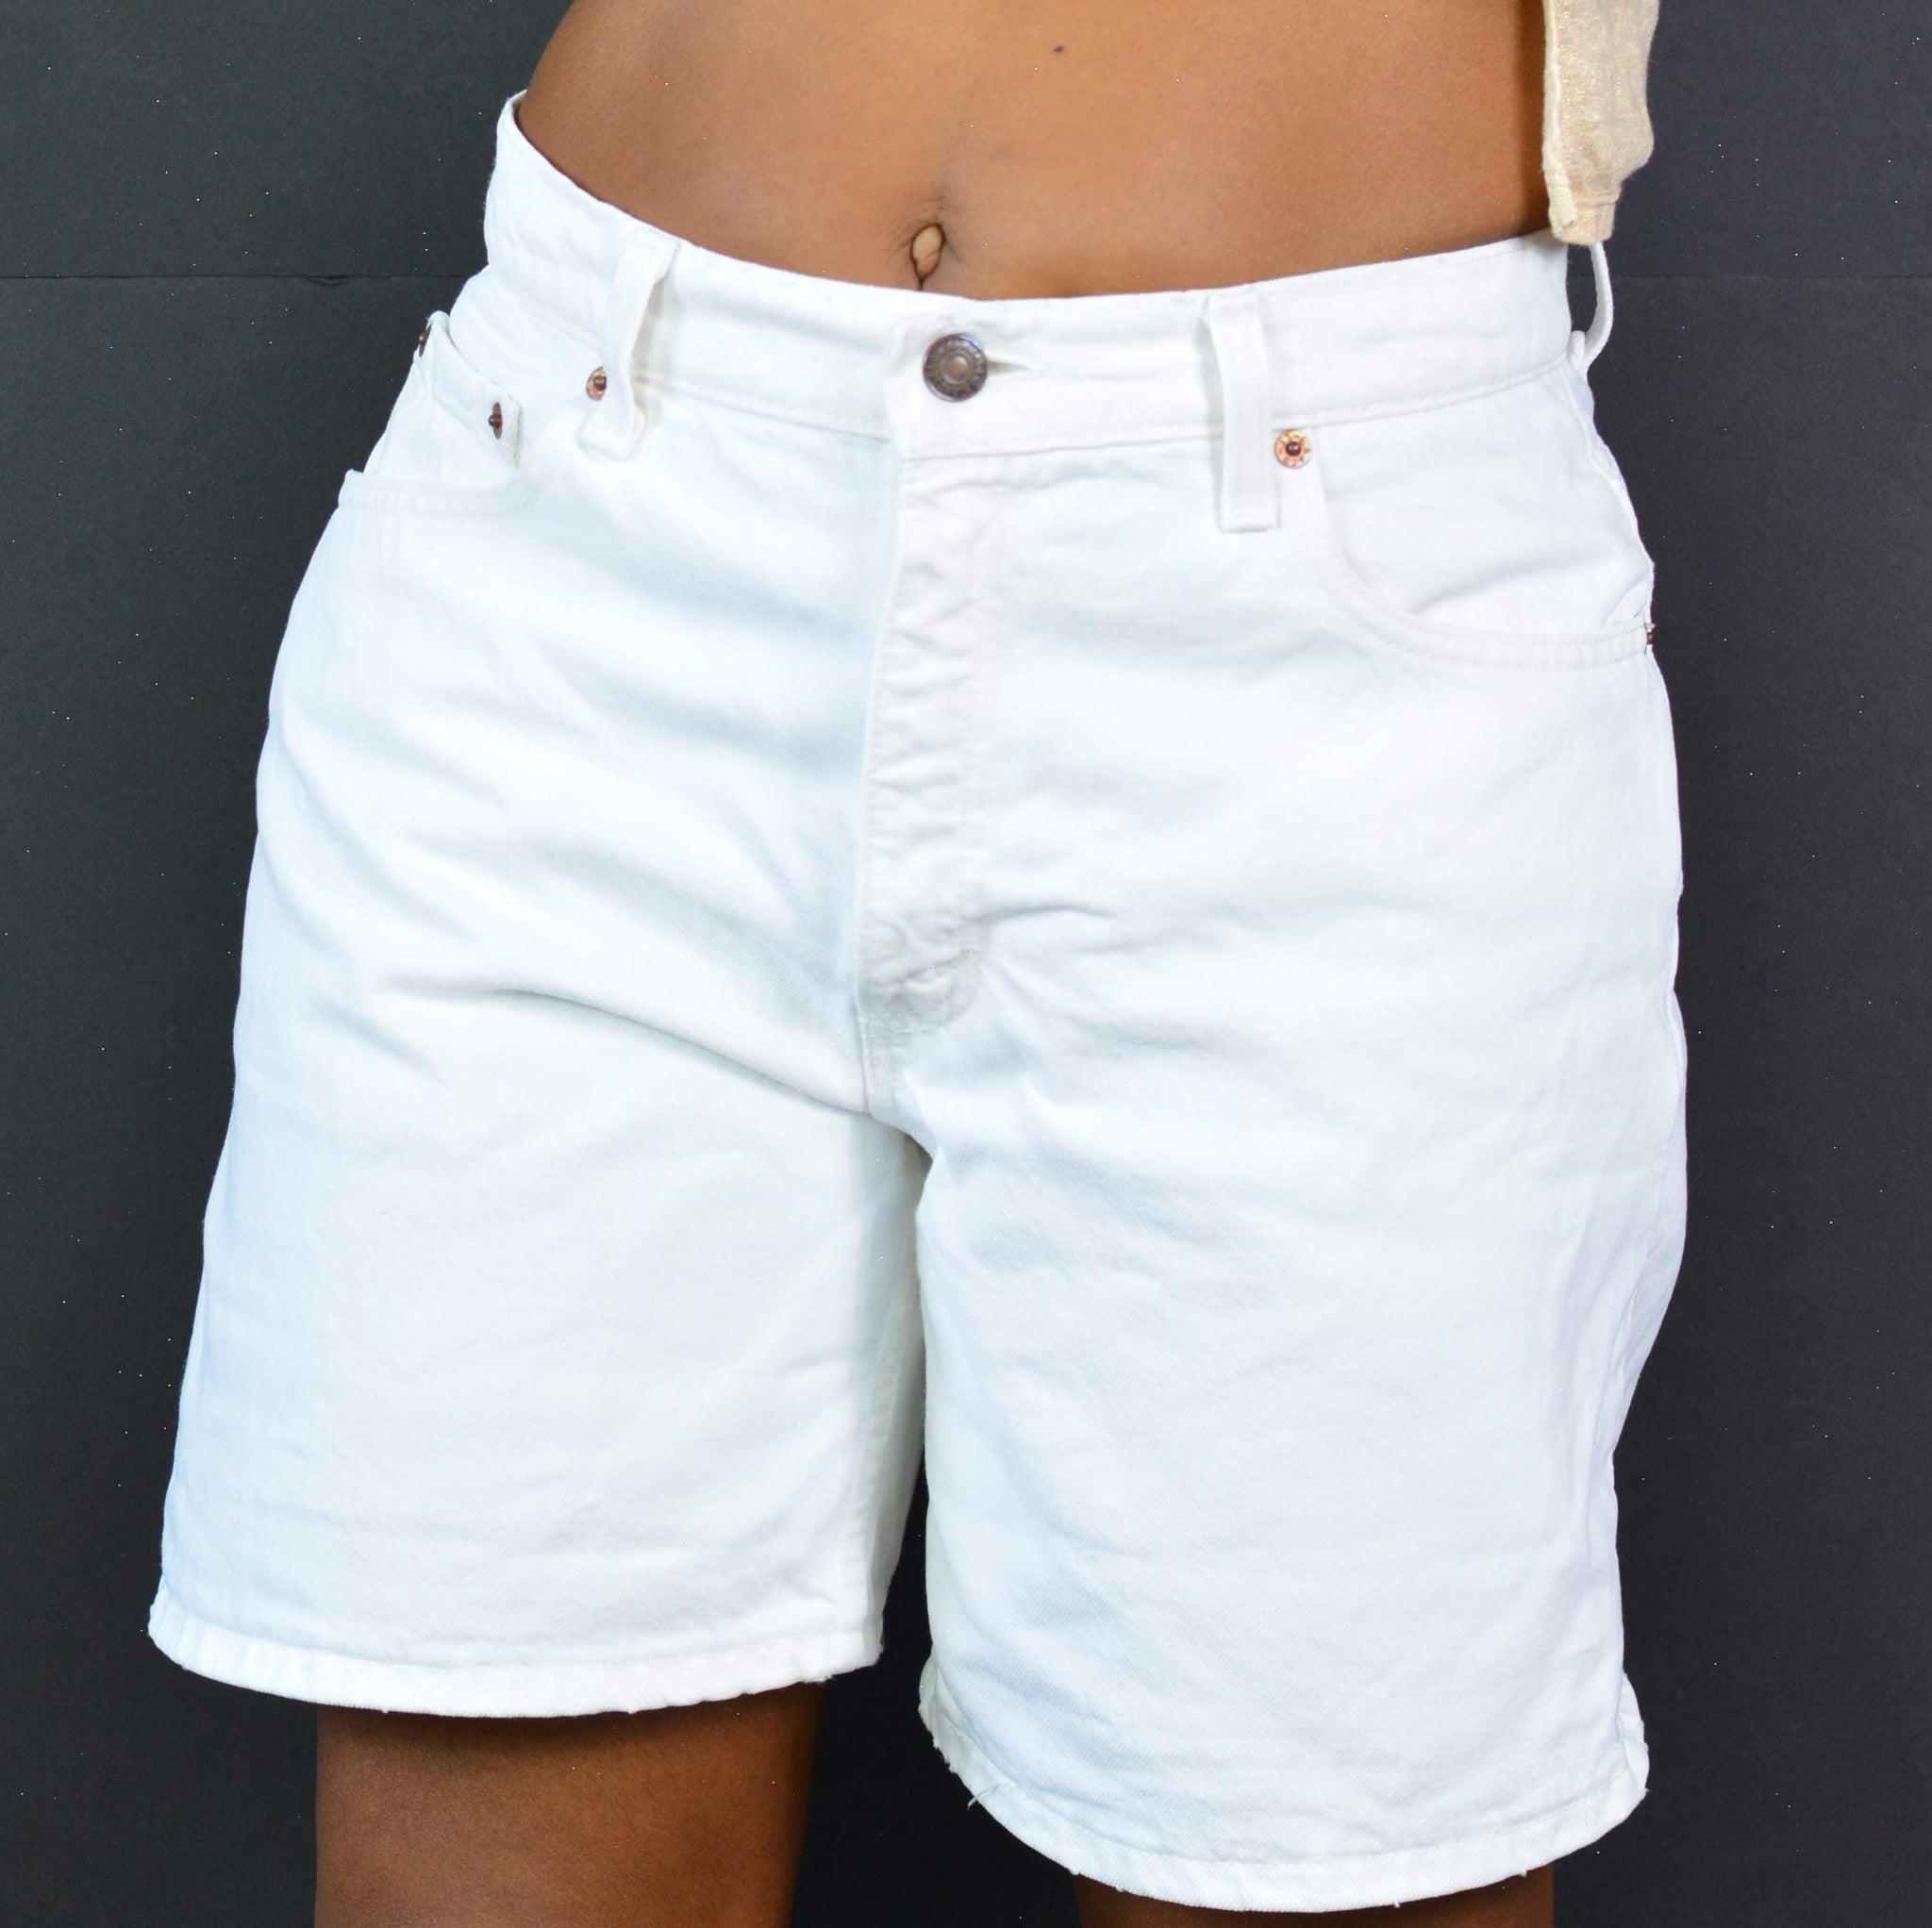 Levis 550 Vintage Jean Shorts High Rise USA Size 29 30